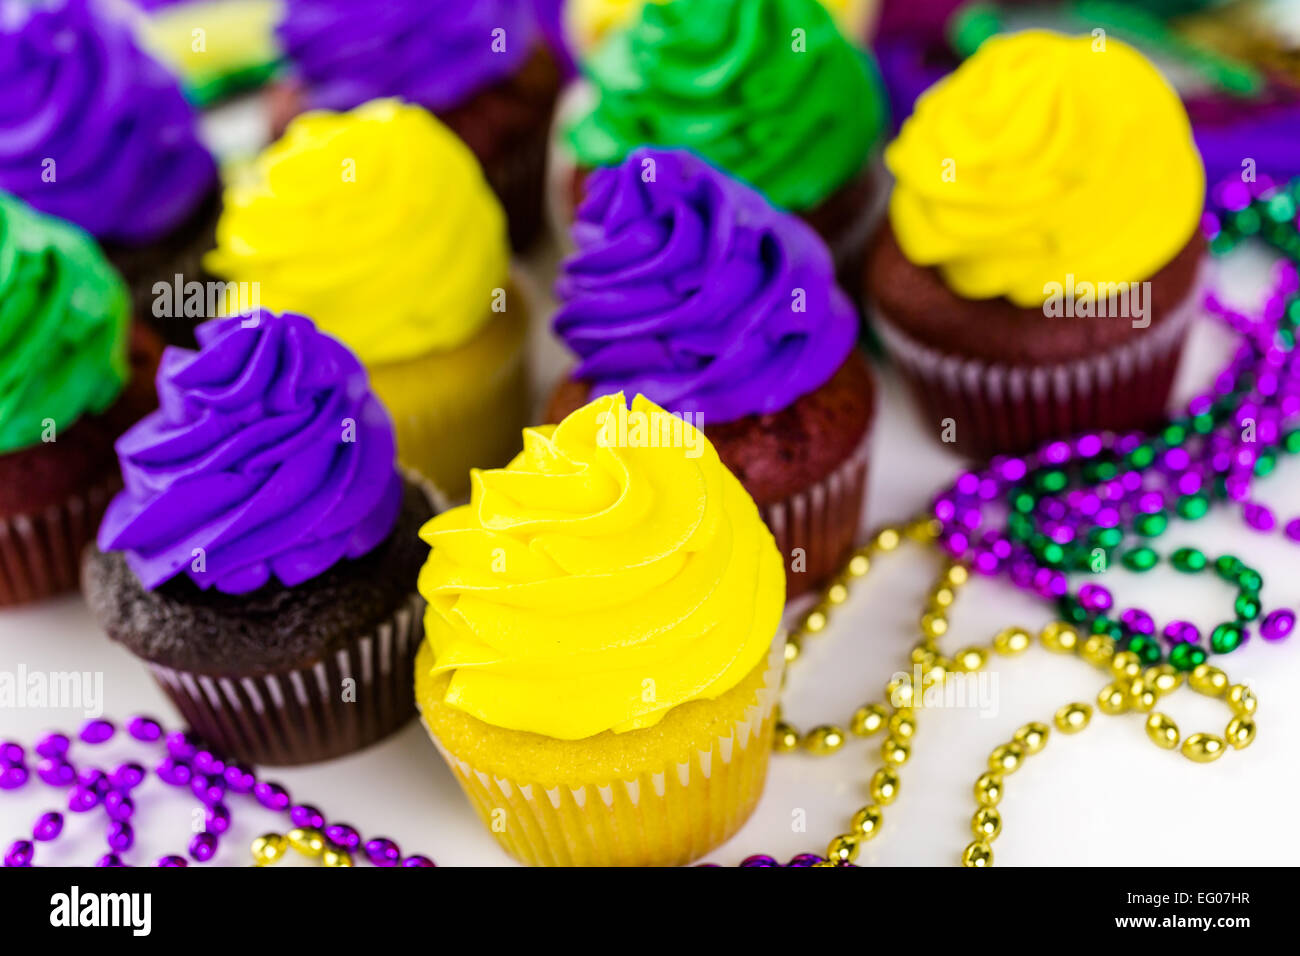 Cupcakes decorated with bright color icing for Mardi Gras party ...